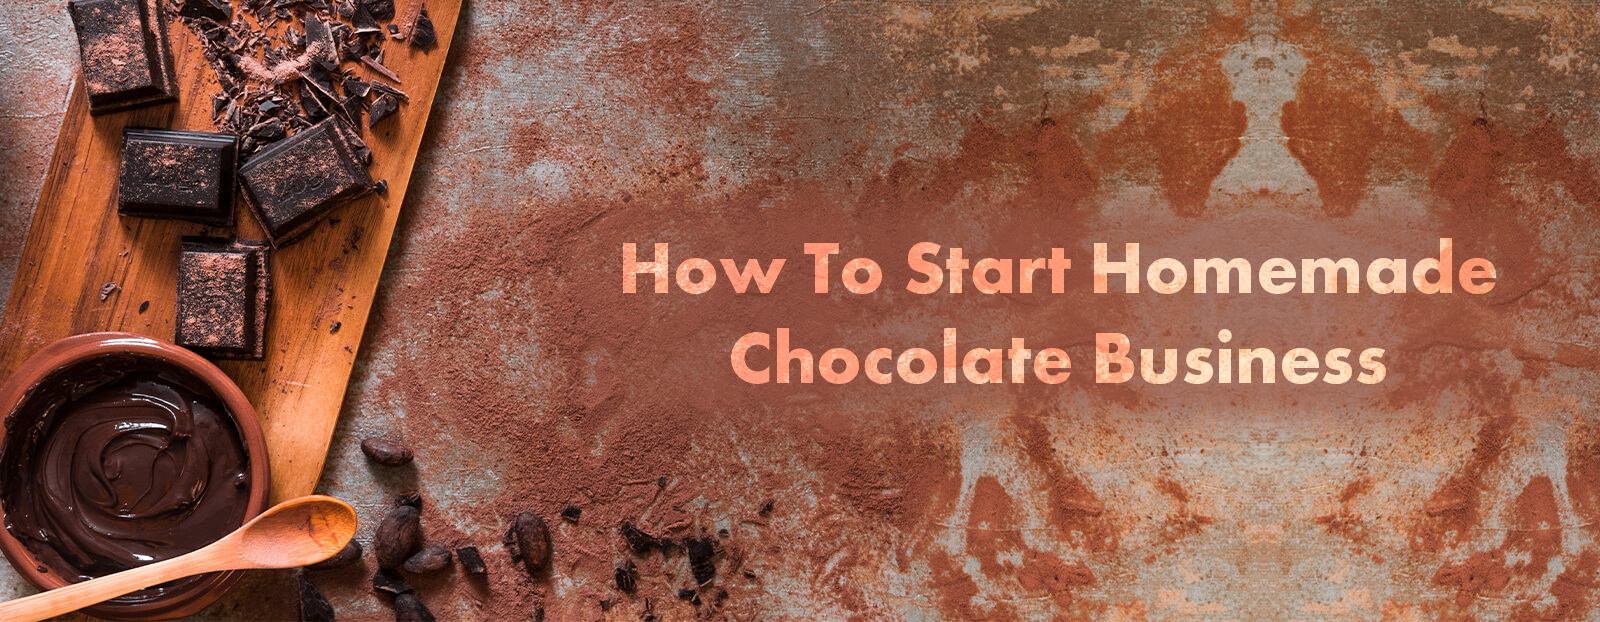 How To Start A Homemade Chocolate Business?